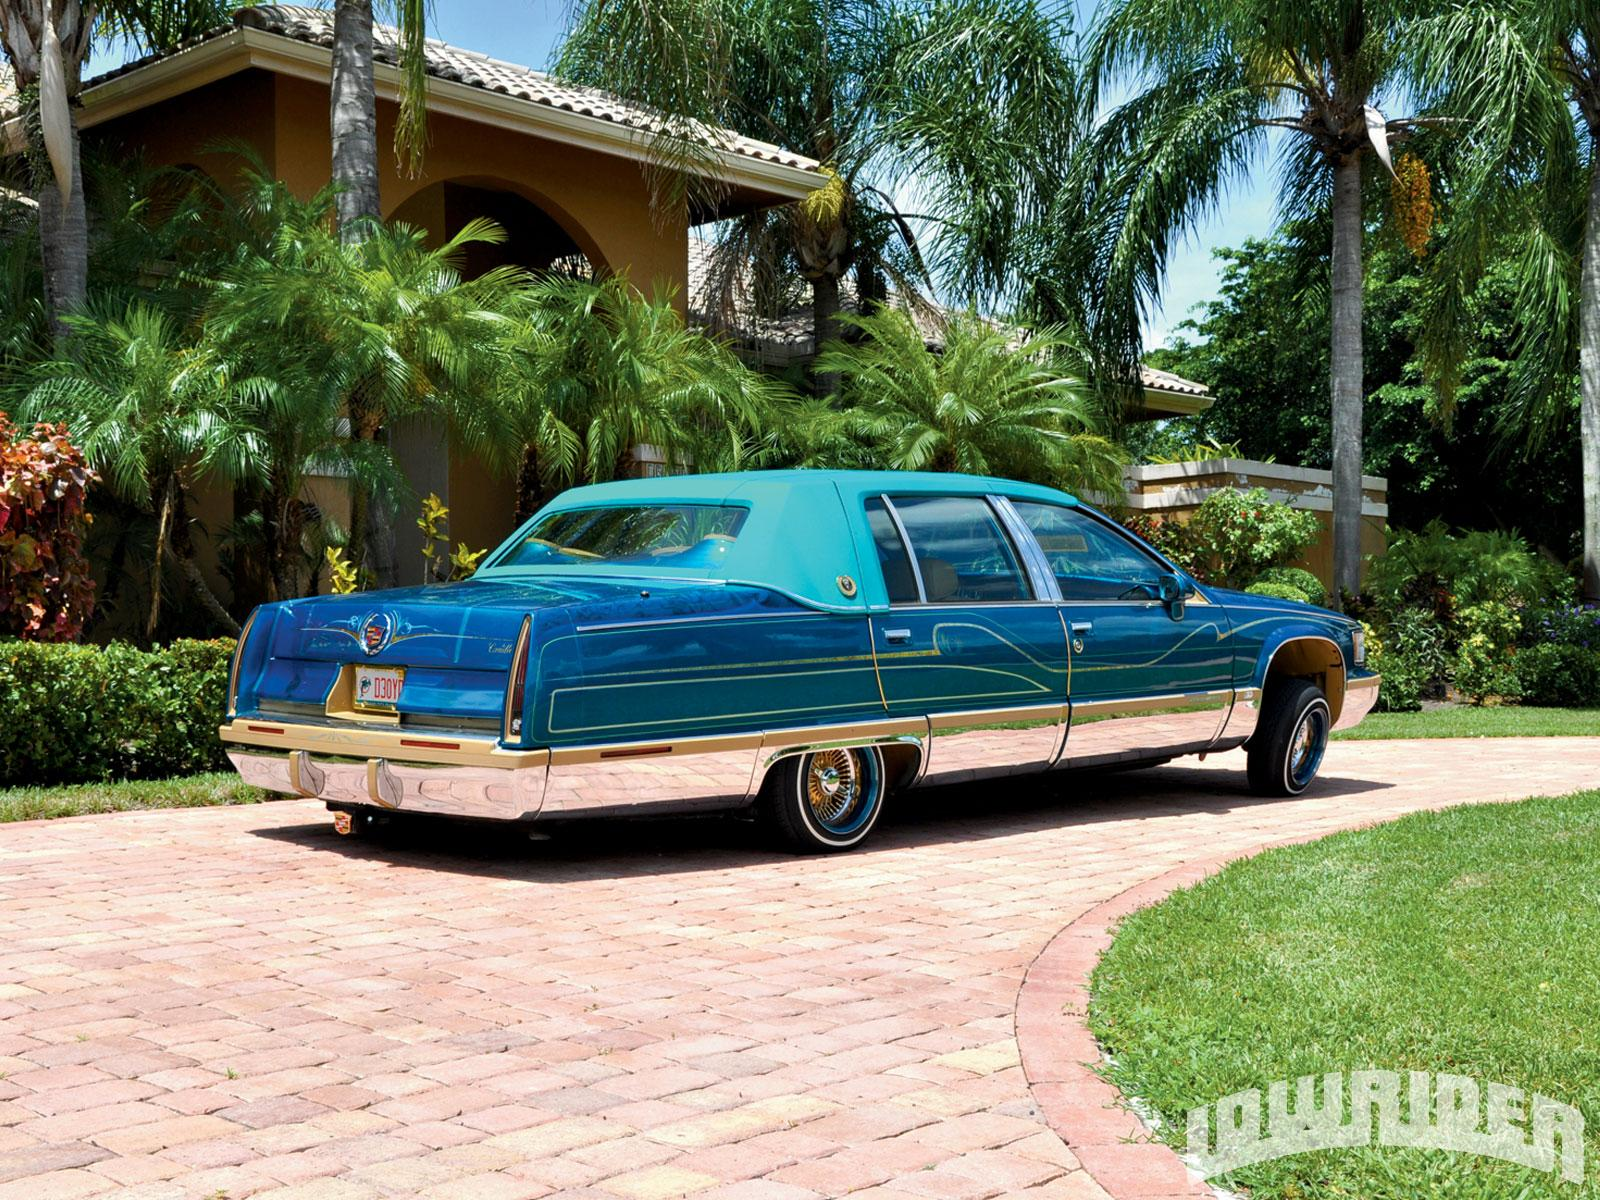 1993 Cadillac Fleetwood Information And Photos Zombiedrive